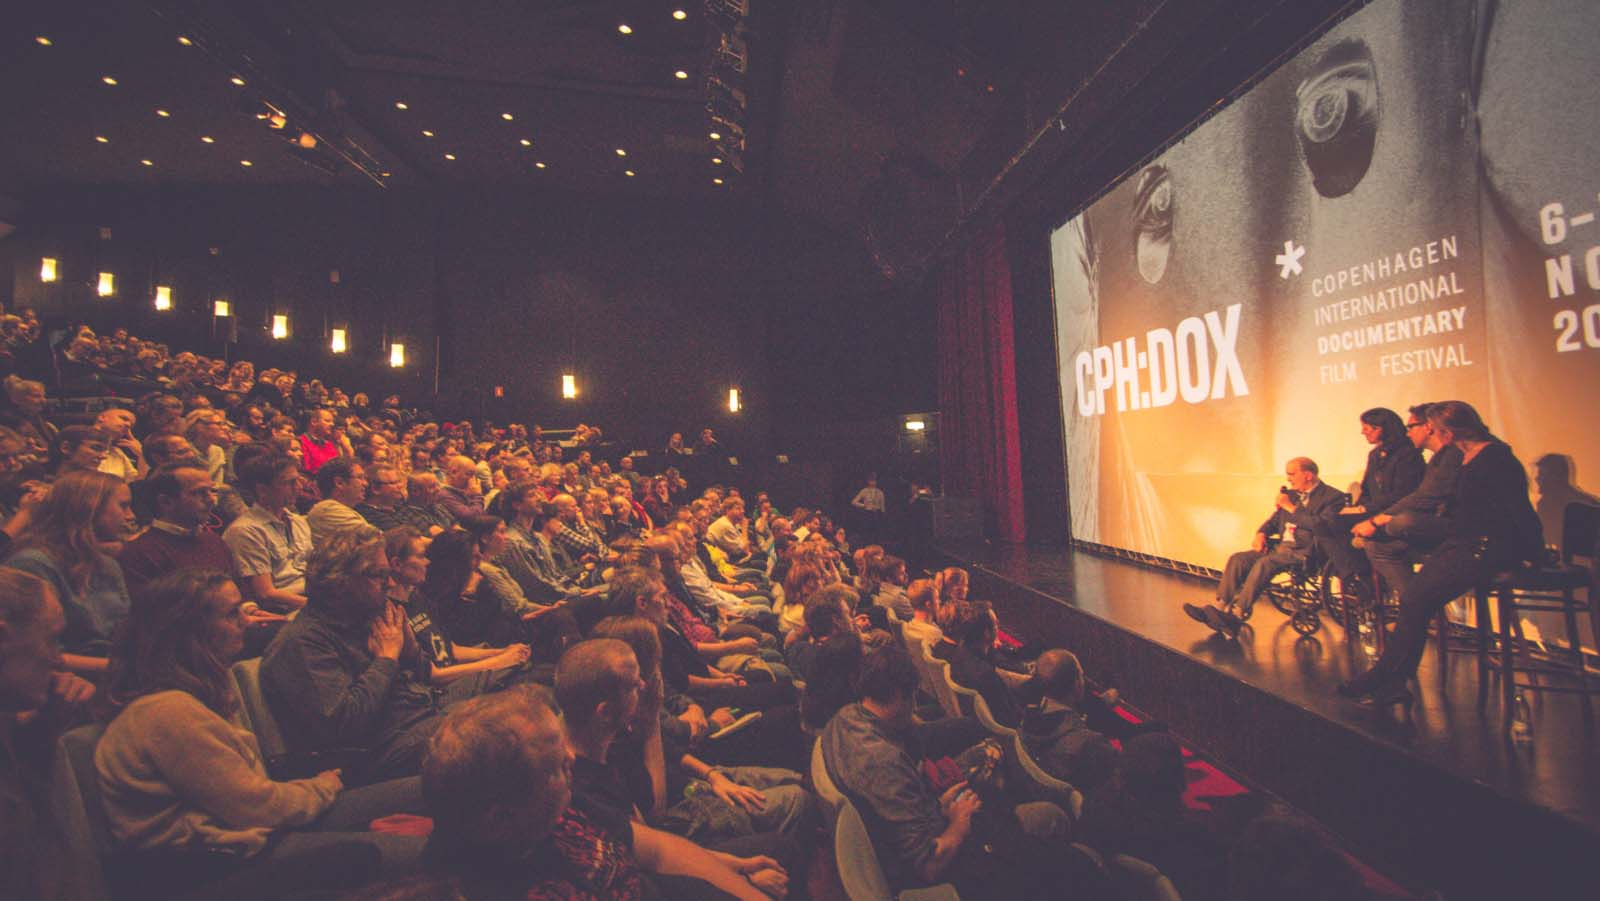 A packed cinema theatre at the CPH:DOX Film Festival